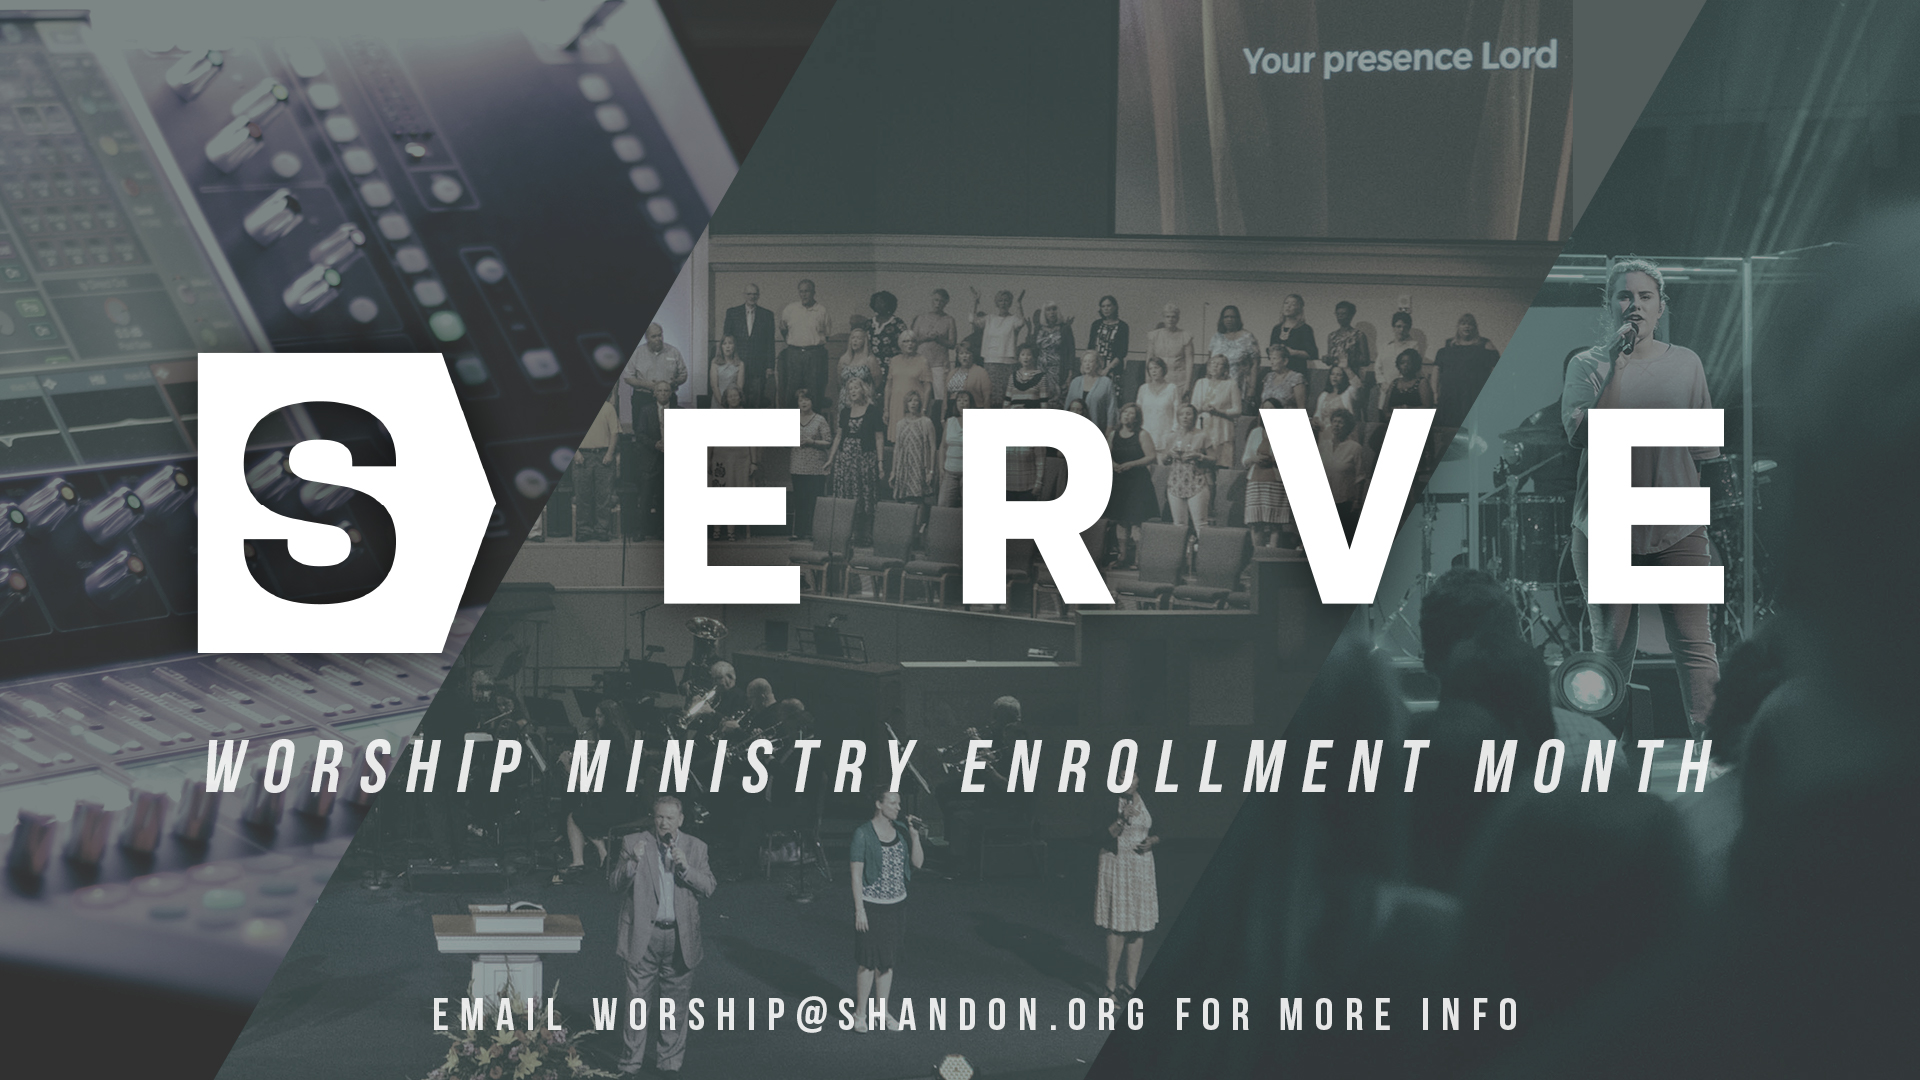 Opportunities to SERVE in our Worship Ministry